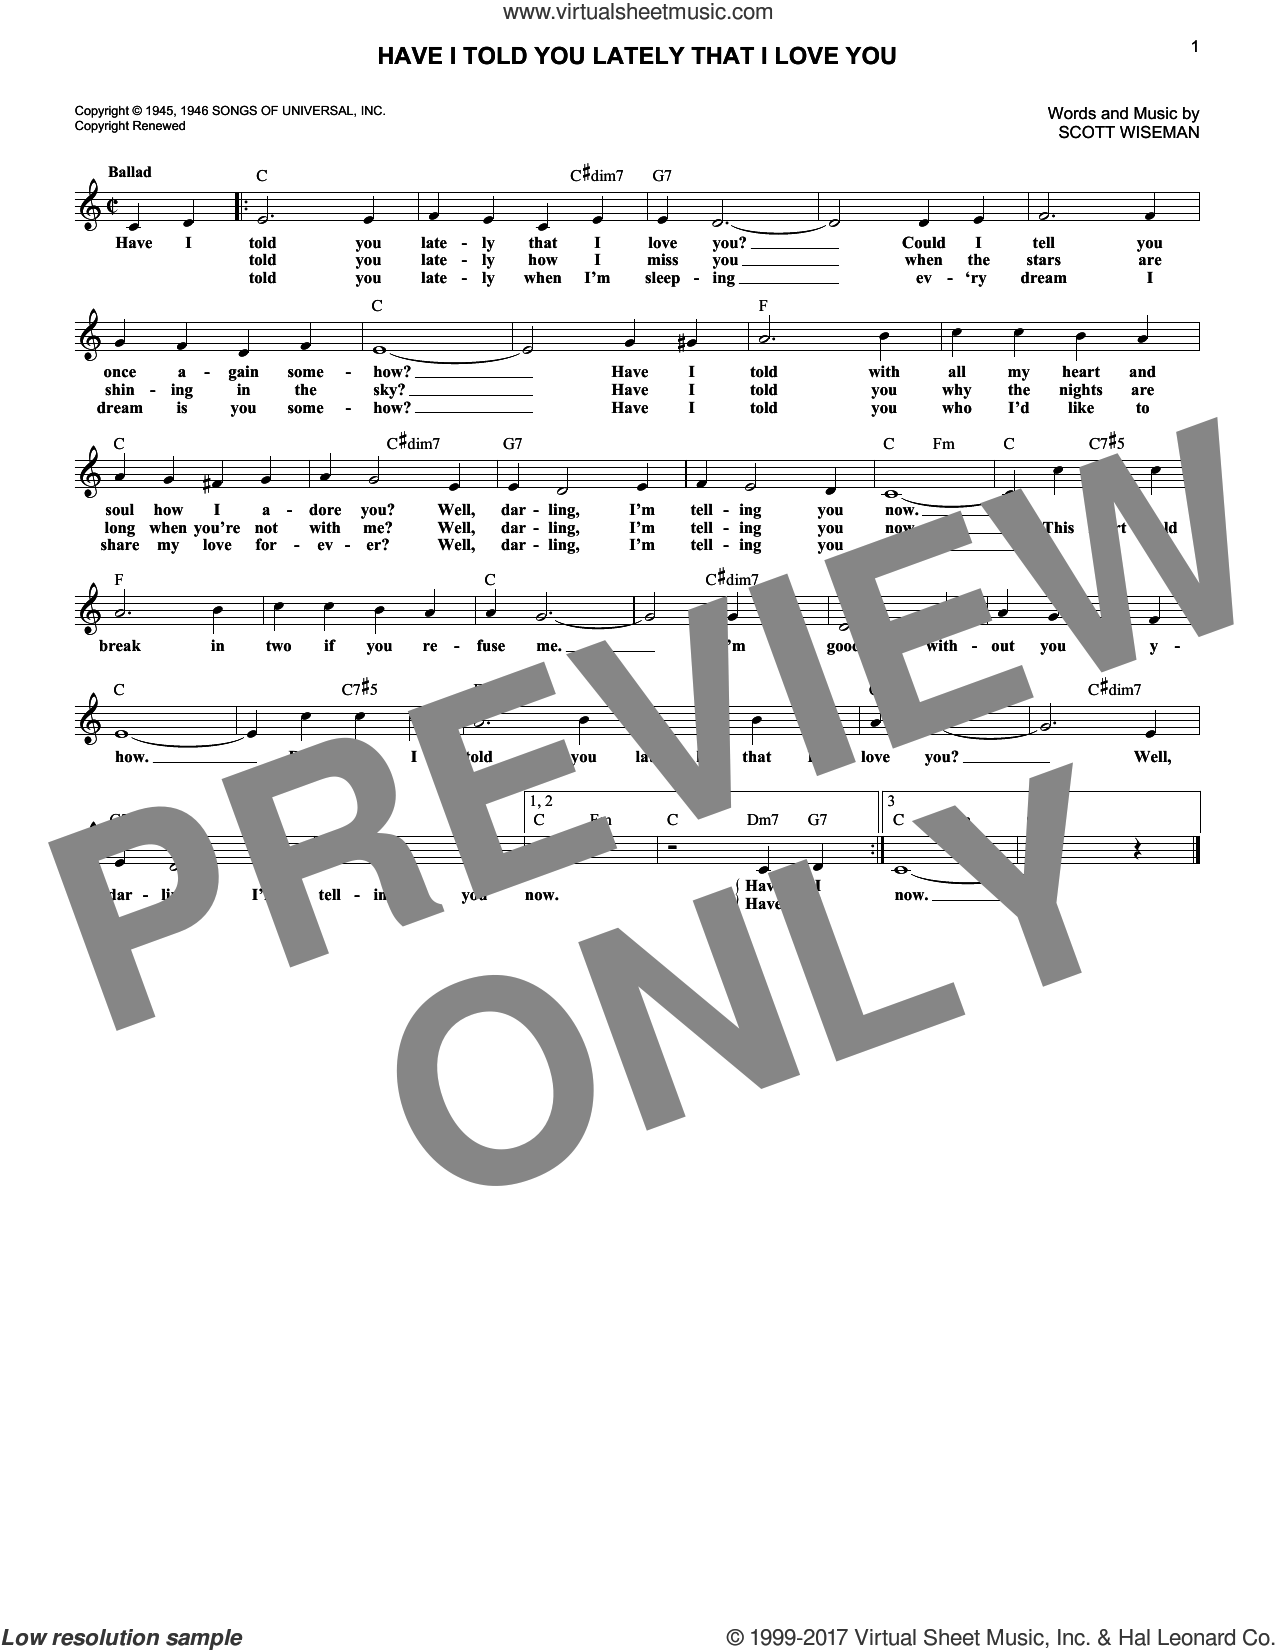 Have I Told You Lately That I Love You sheet music for voice and other instruments (fake book) by Scott Wiseman, Gene Autrey, Kitty Wells & Red Foley and Ricky Nelson, intermediate